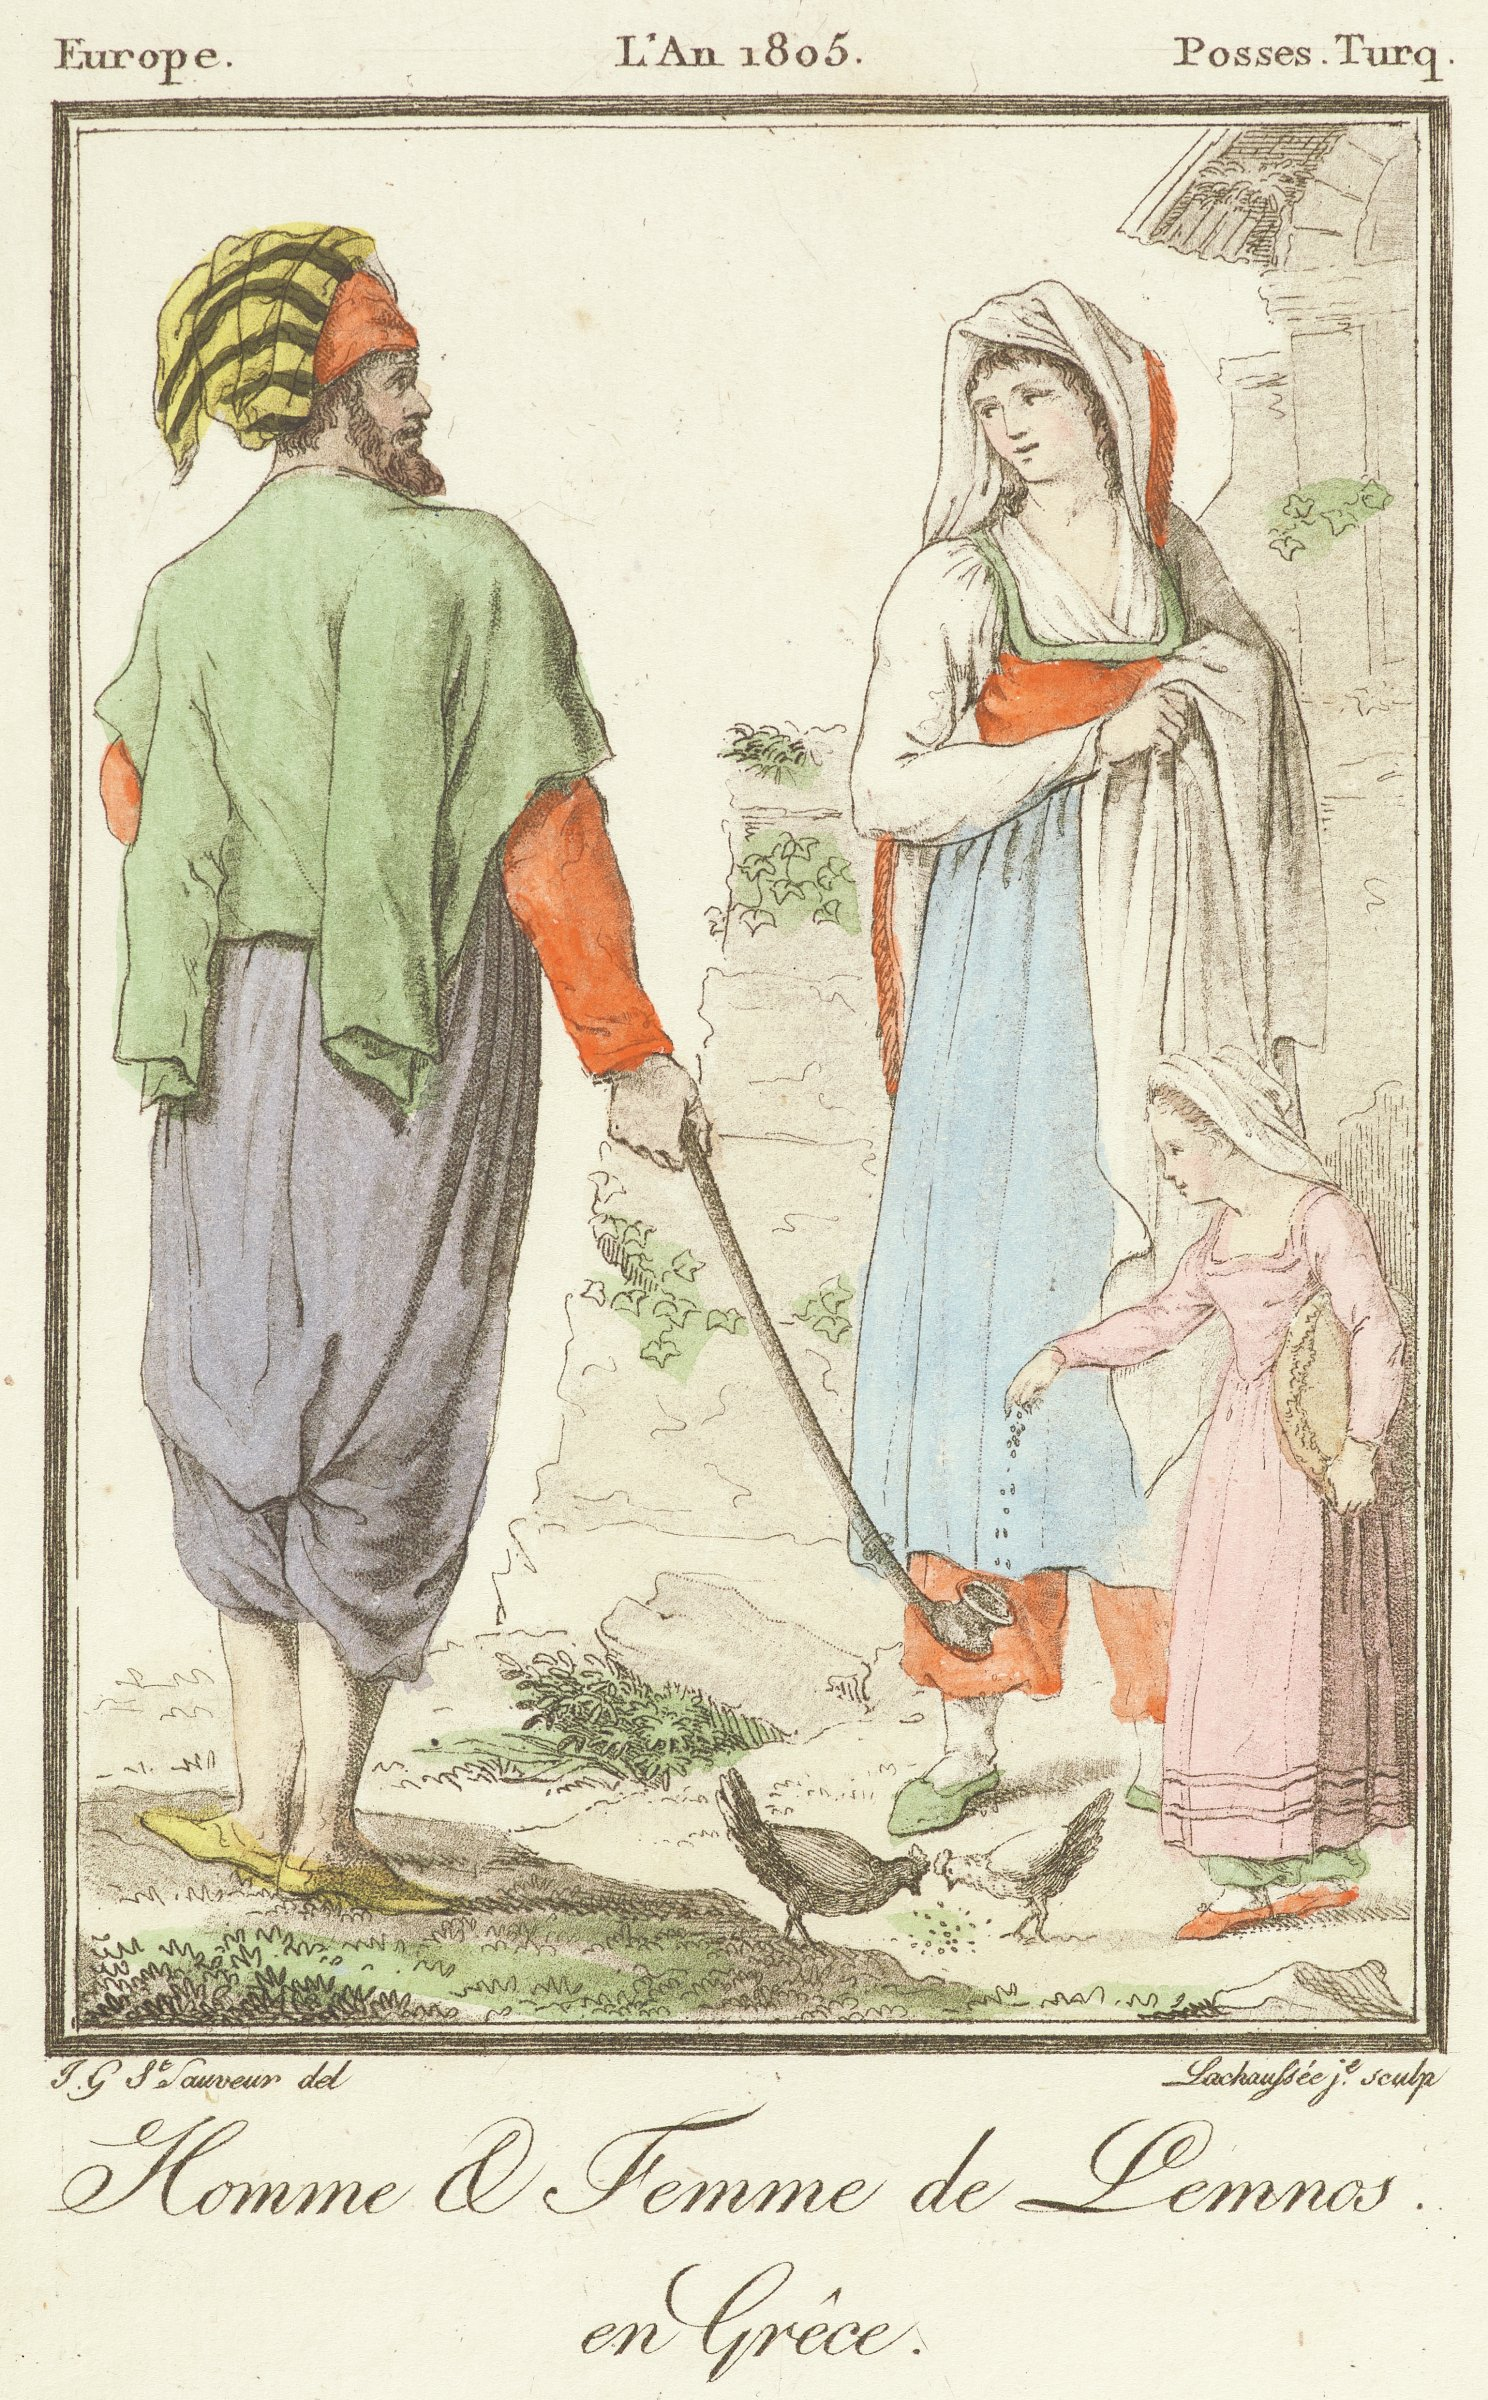 A man passes by a woman and child. The man holds out a long pipe as the child drops a substance into it.